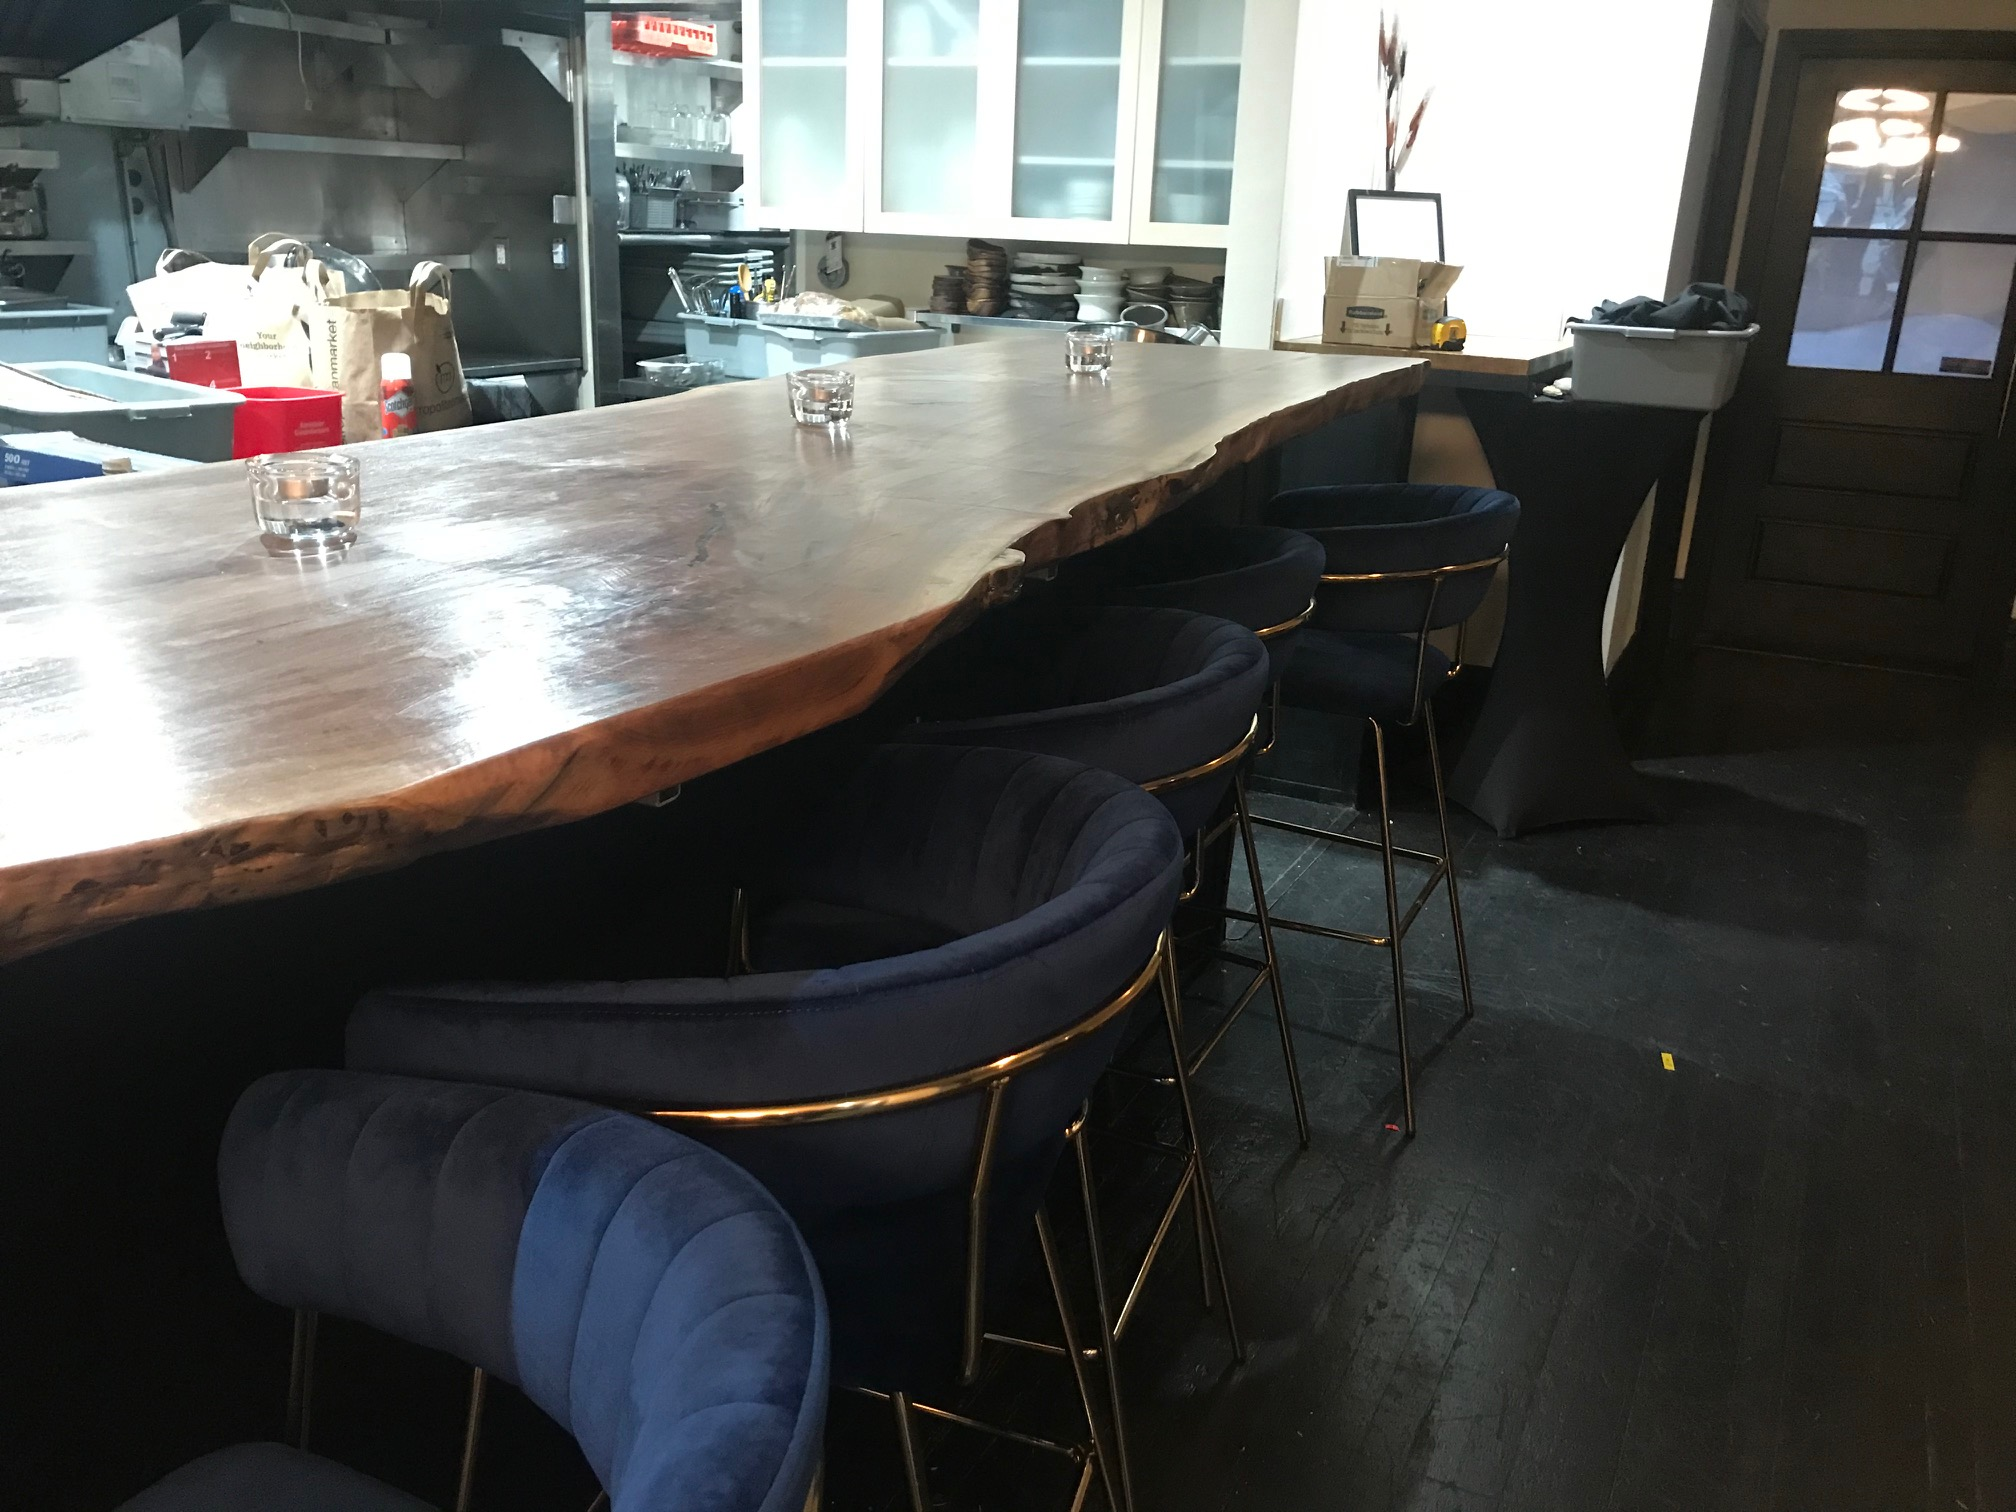 A view of Surrell's chef's counter